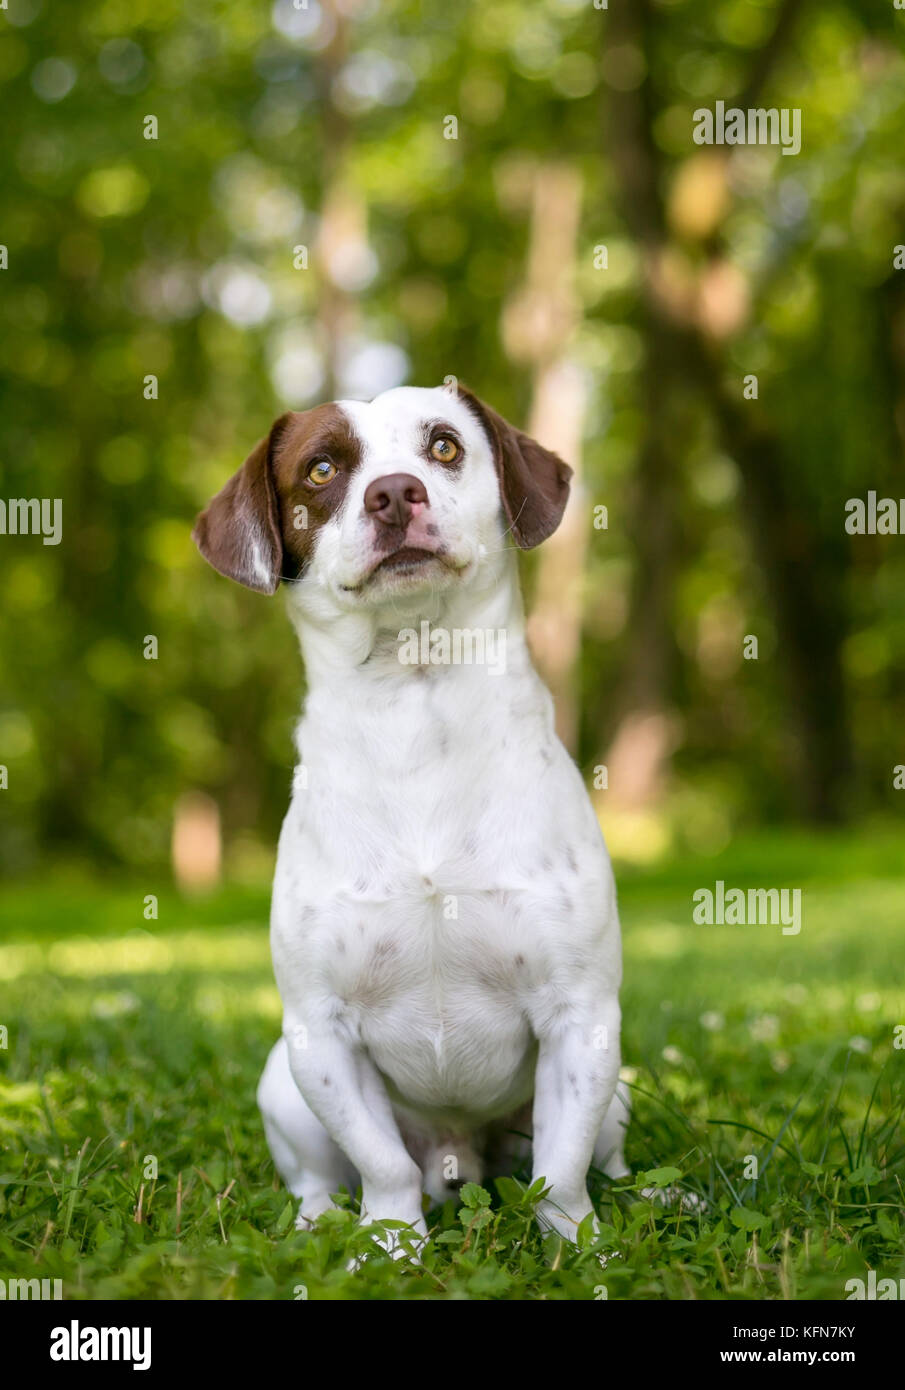 A brown and white mixed breed dog sitting outdoors, looking up - Stock Image